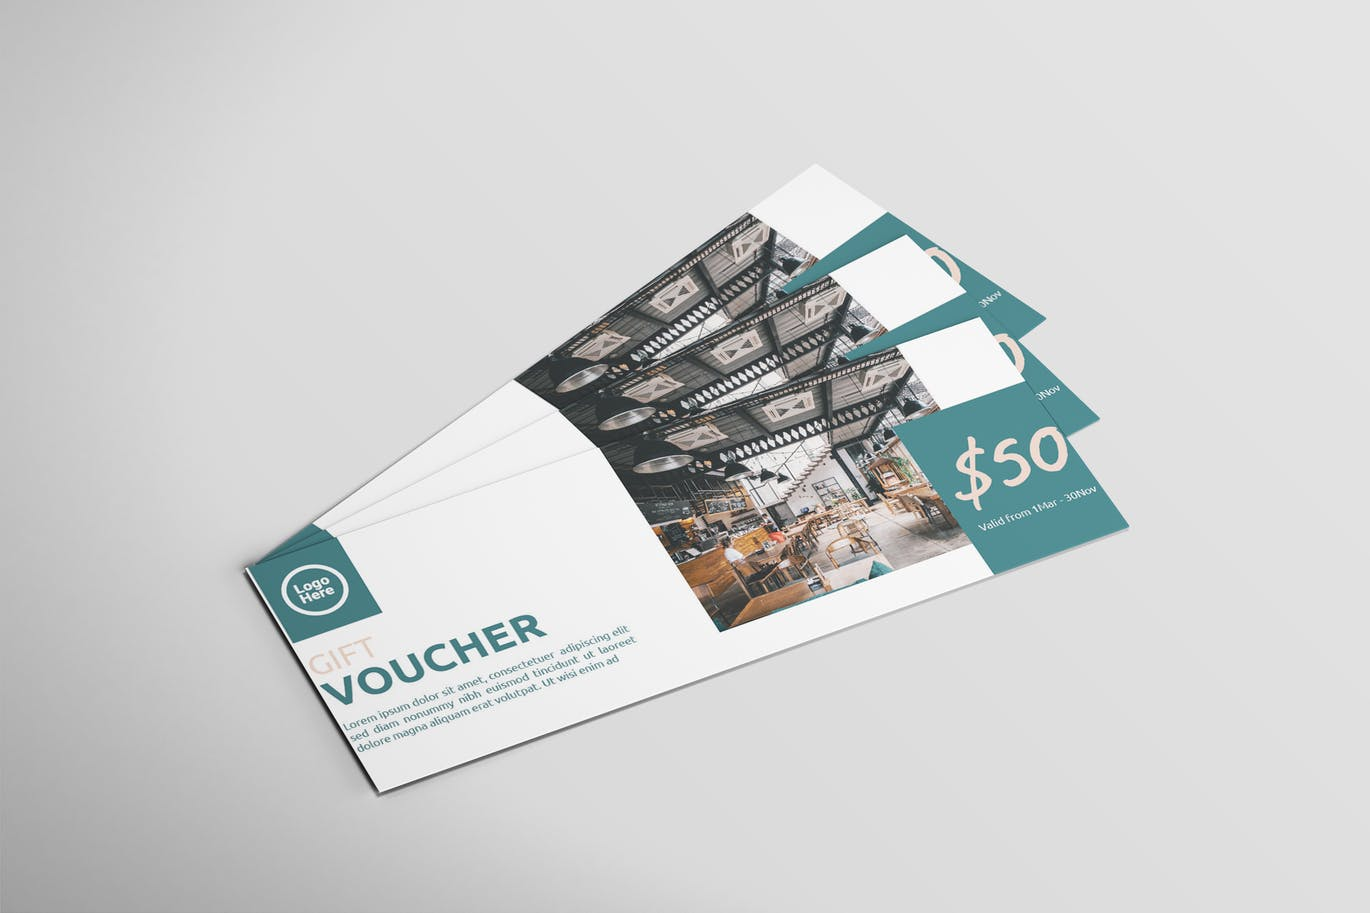 Restaurant Voucher - Voucher Design